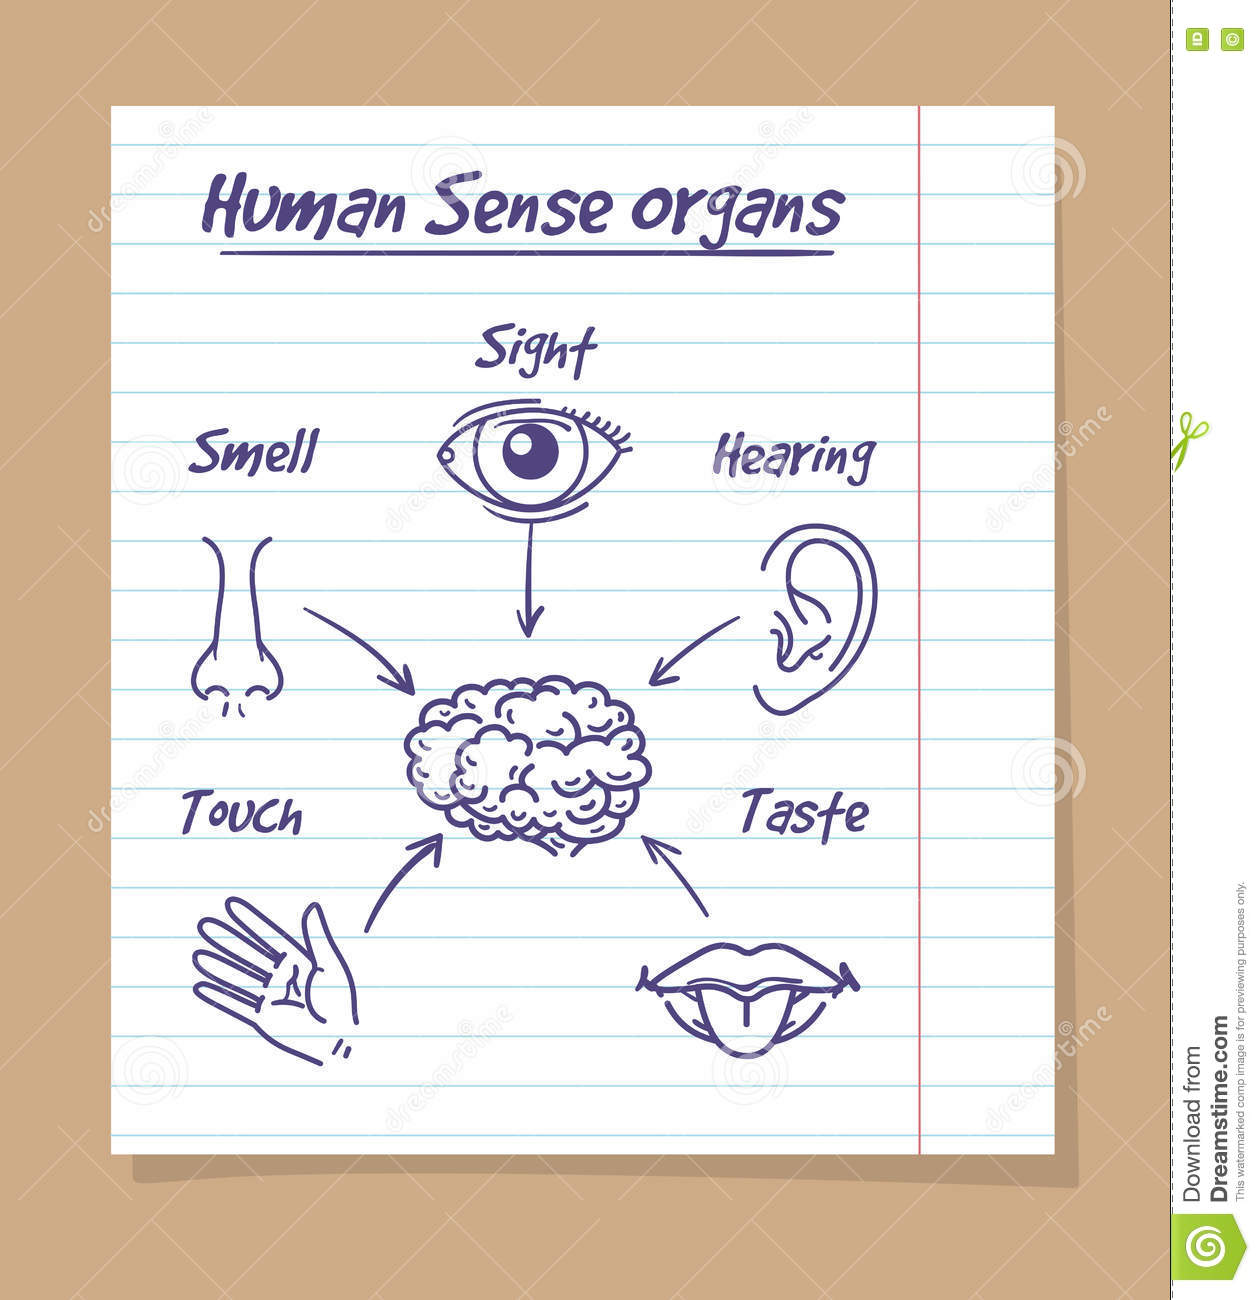 Five senses sketch on notebook page stock vector illustration of five senses sketch human eye nose and ear smell and taste and touch drawn in a pupil notebook page vector illustration ccuart Gallery